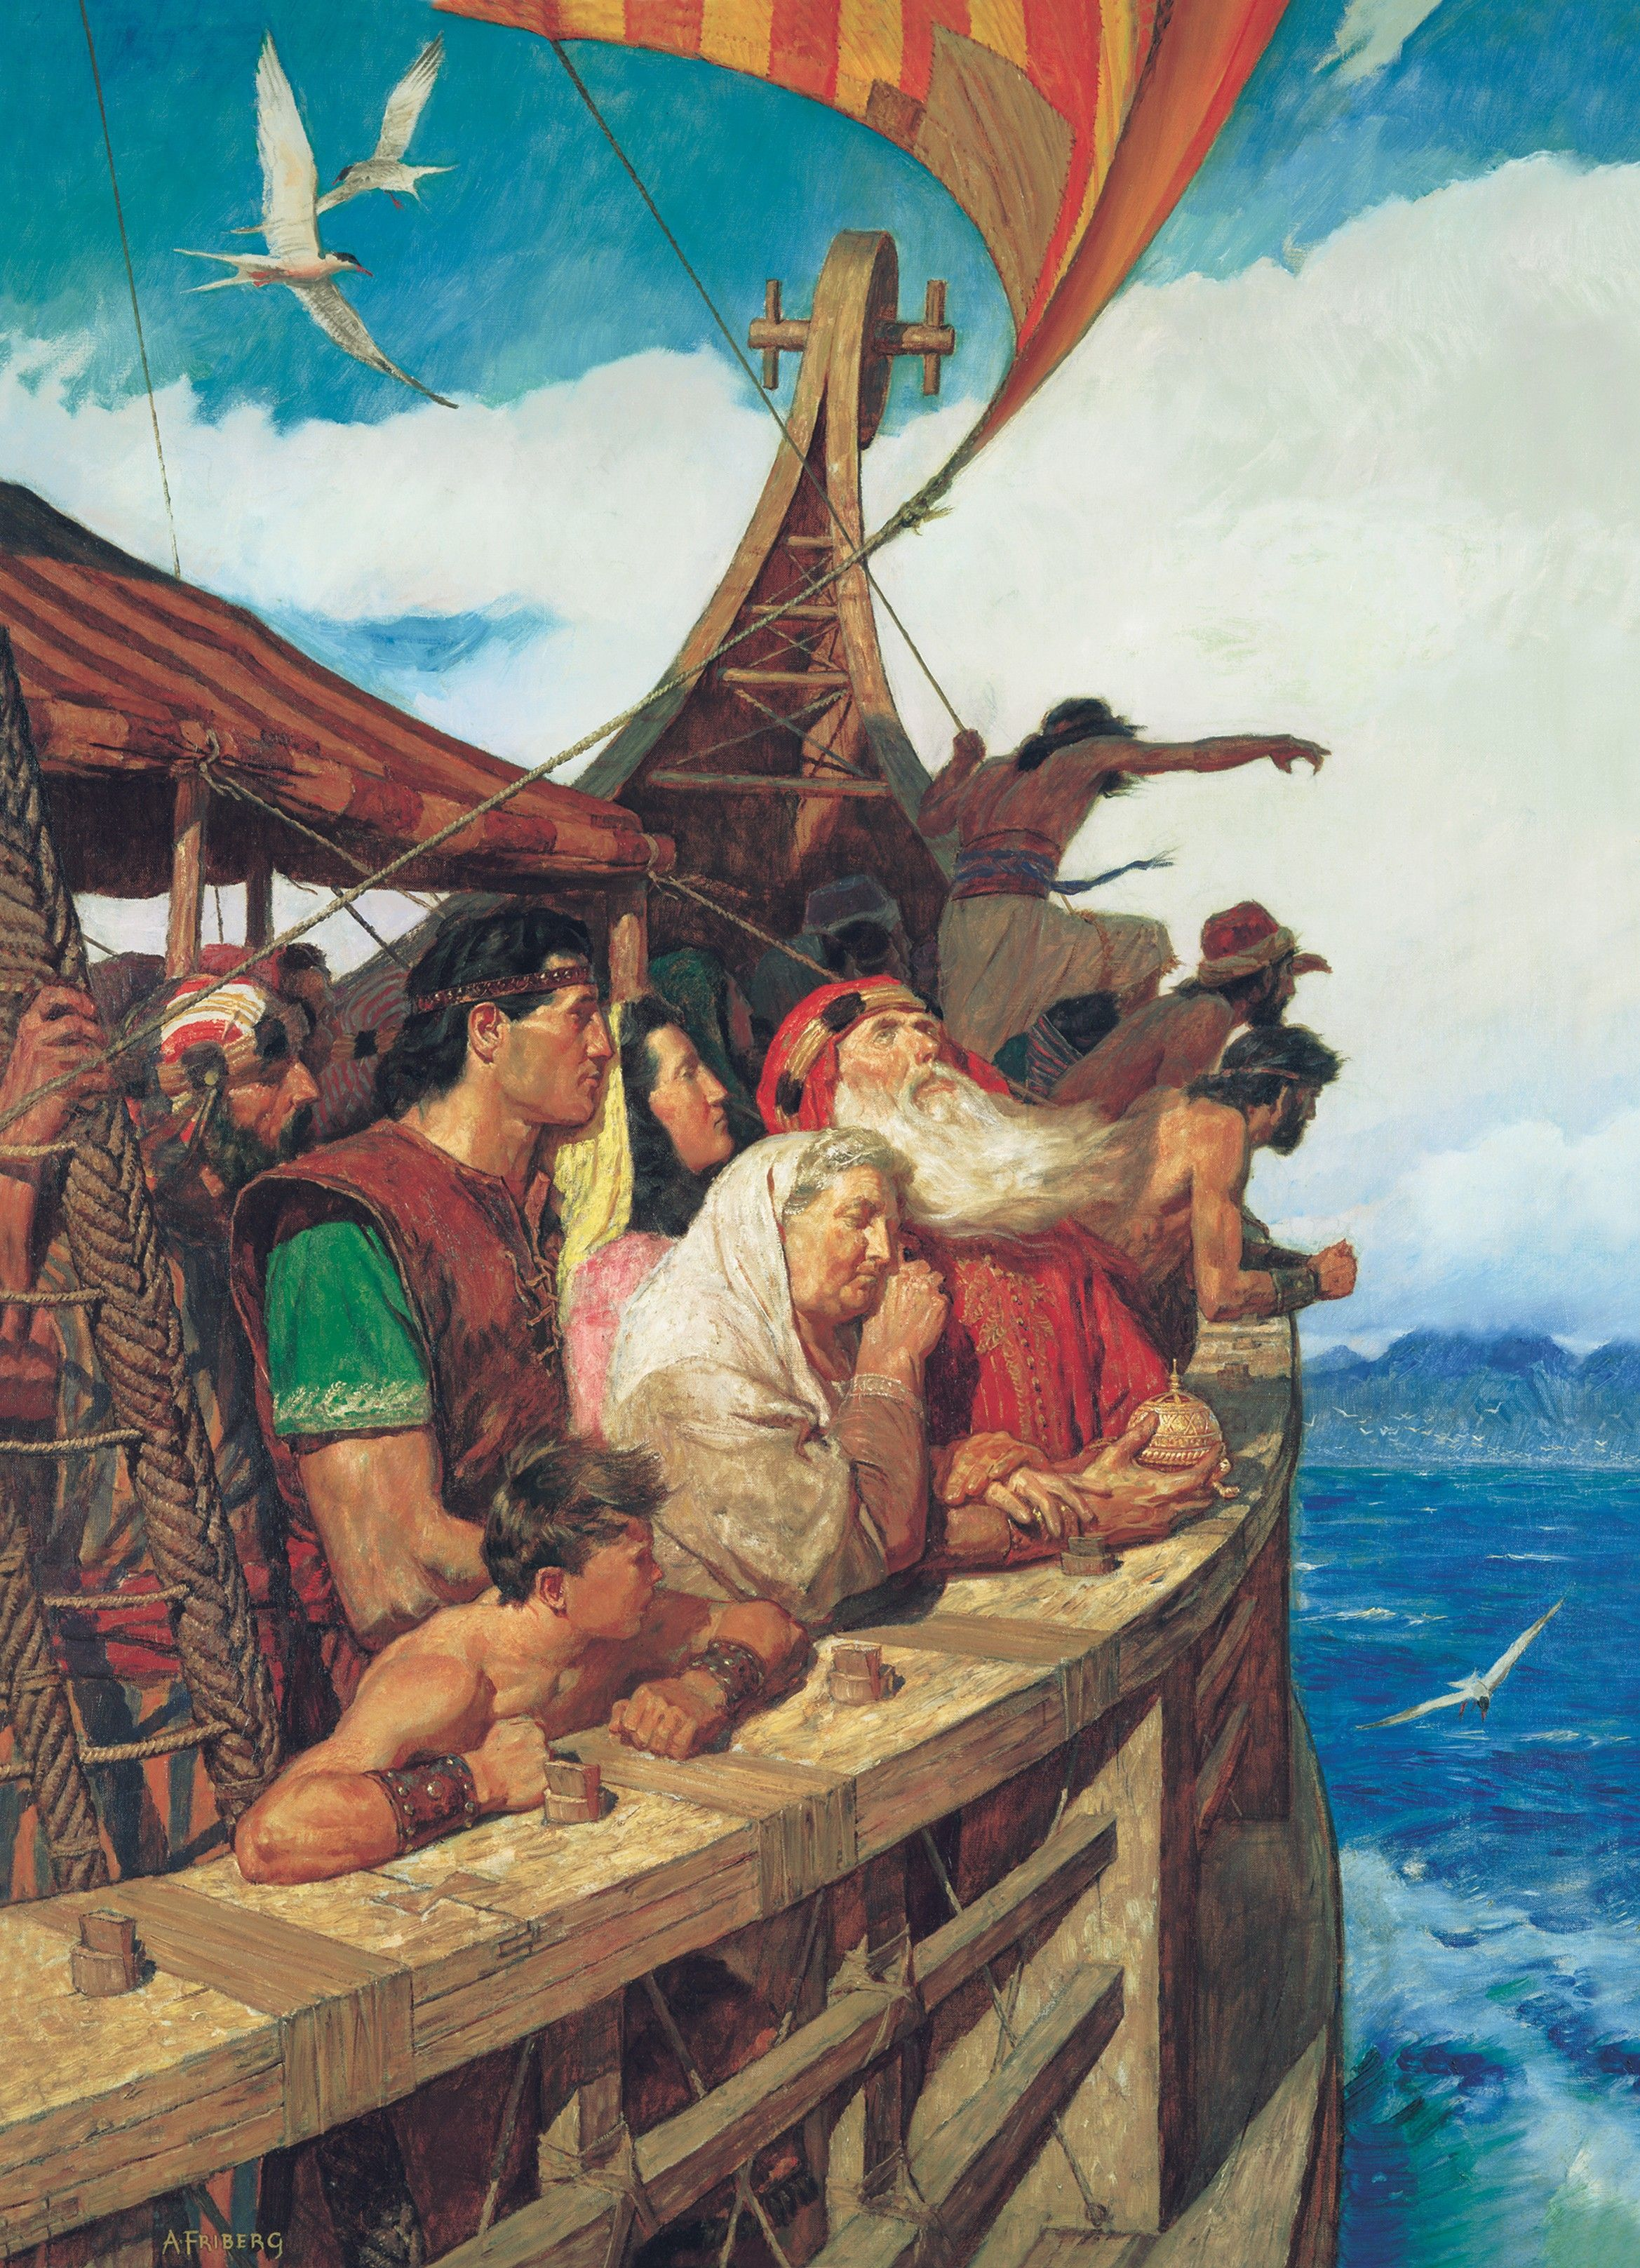 Lehi and His People Arrive in the Promised Land, by Arnold Friberg (62045); GAK 304; GAB 71; Primary manual 1-60; Primary manual 3-45; Primary manual 4-20; 1 Nephi 18:1–24